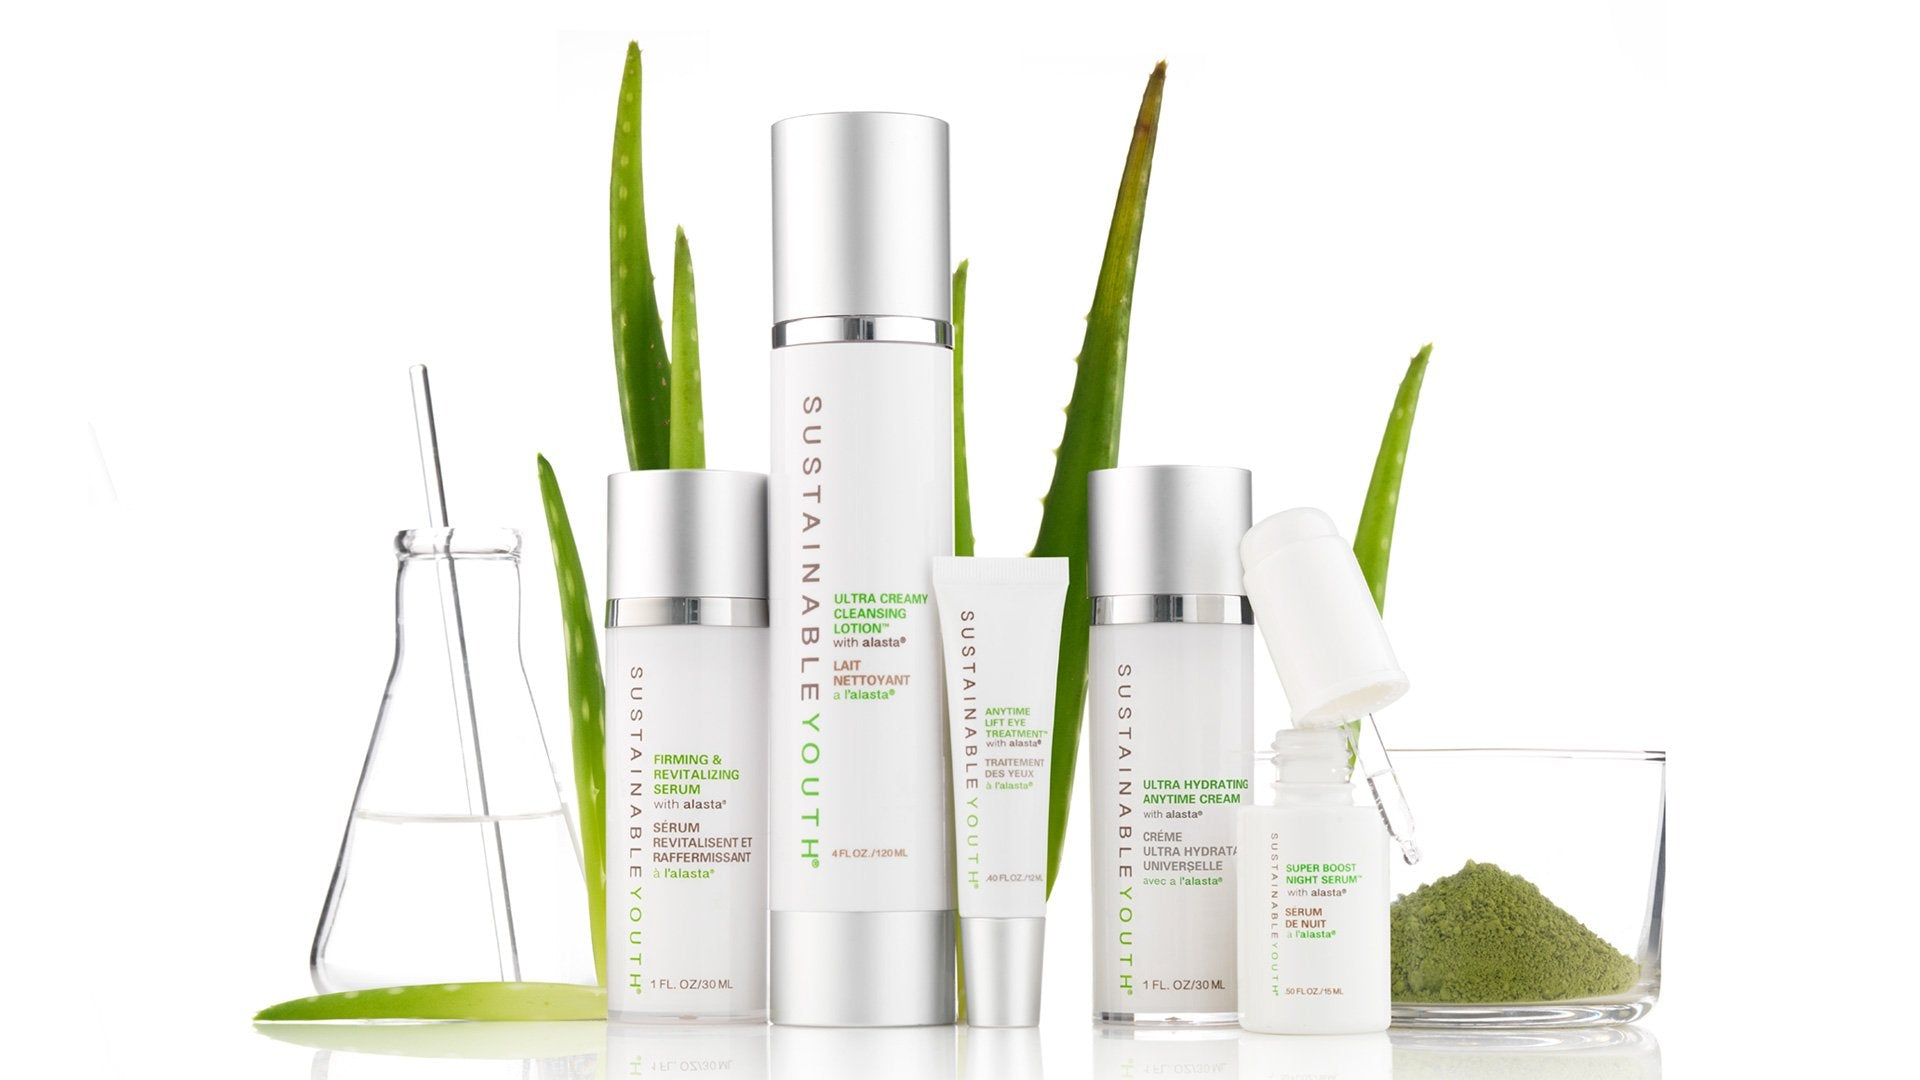 Proven, natural anti-aging skincare<br>years in the making